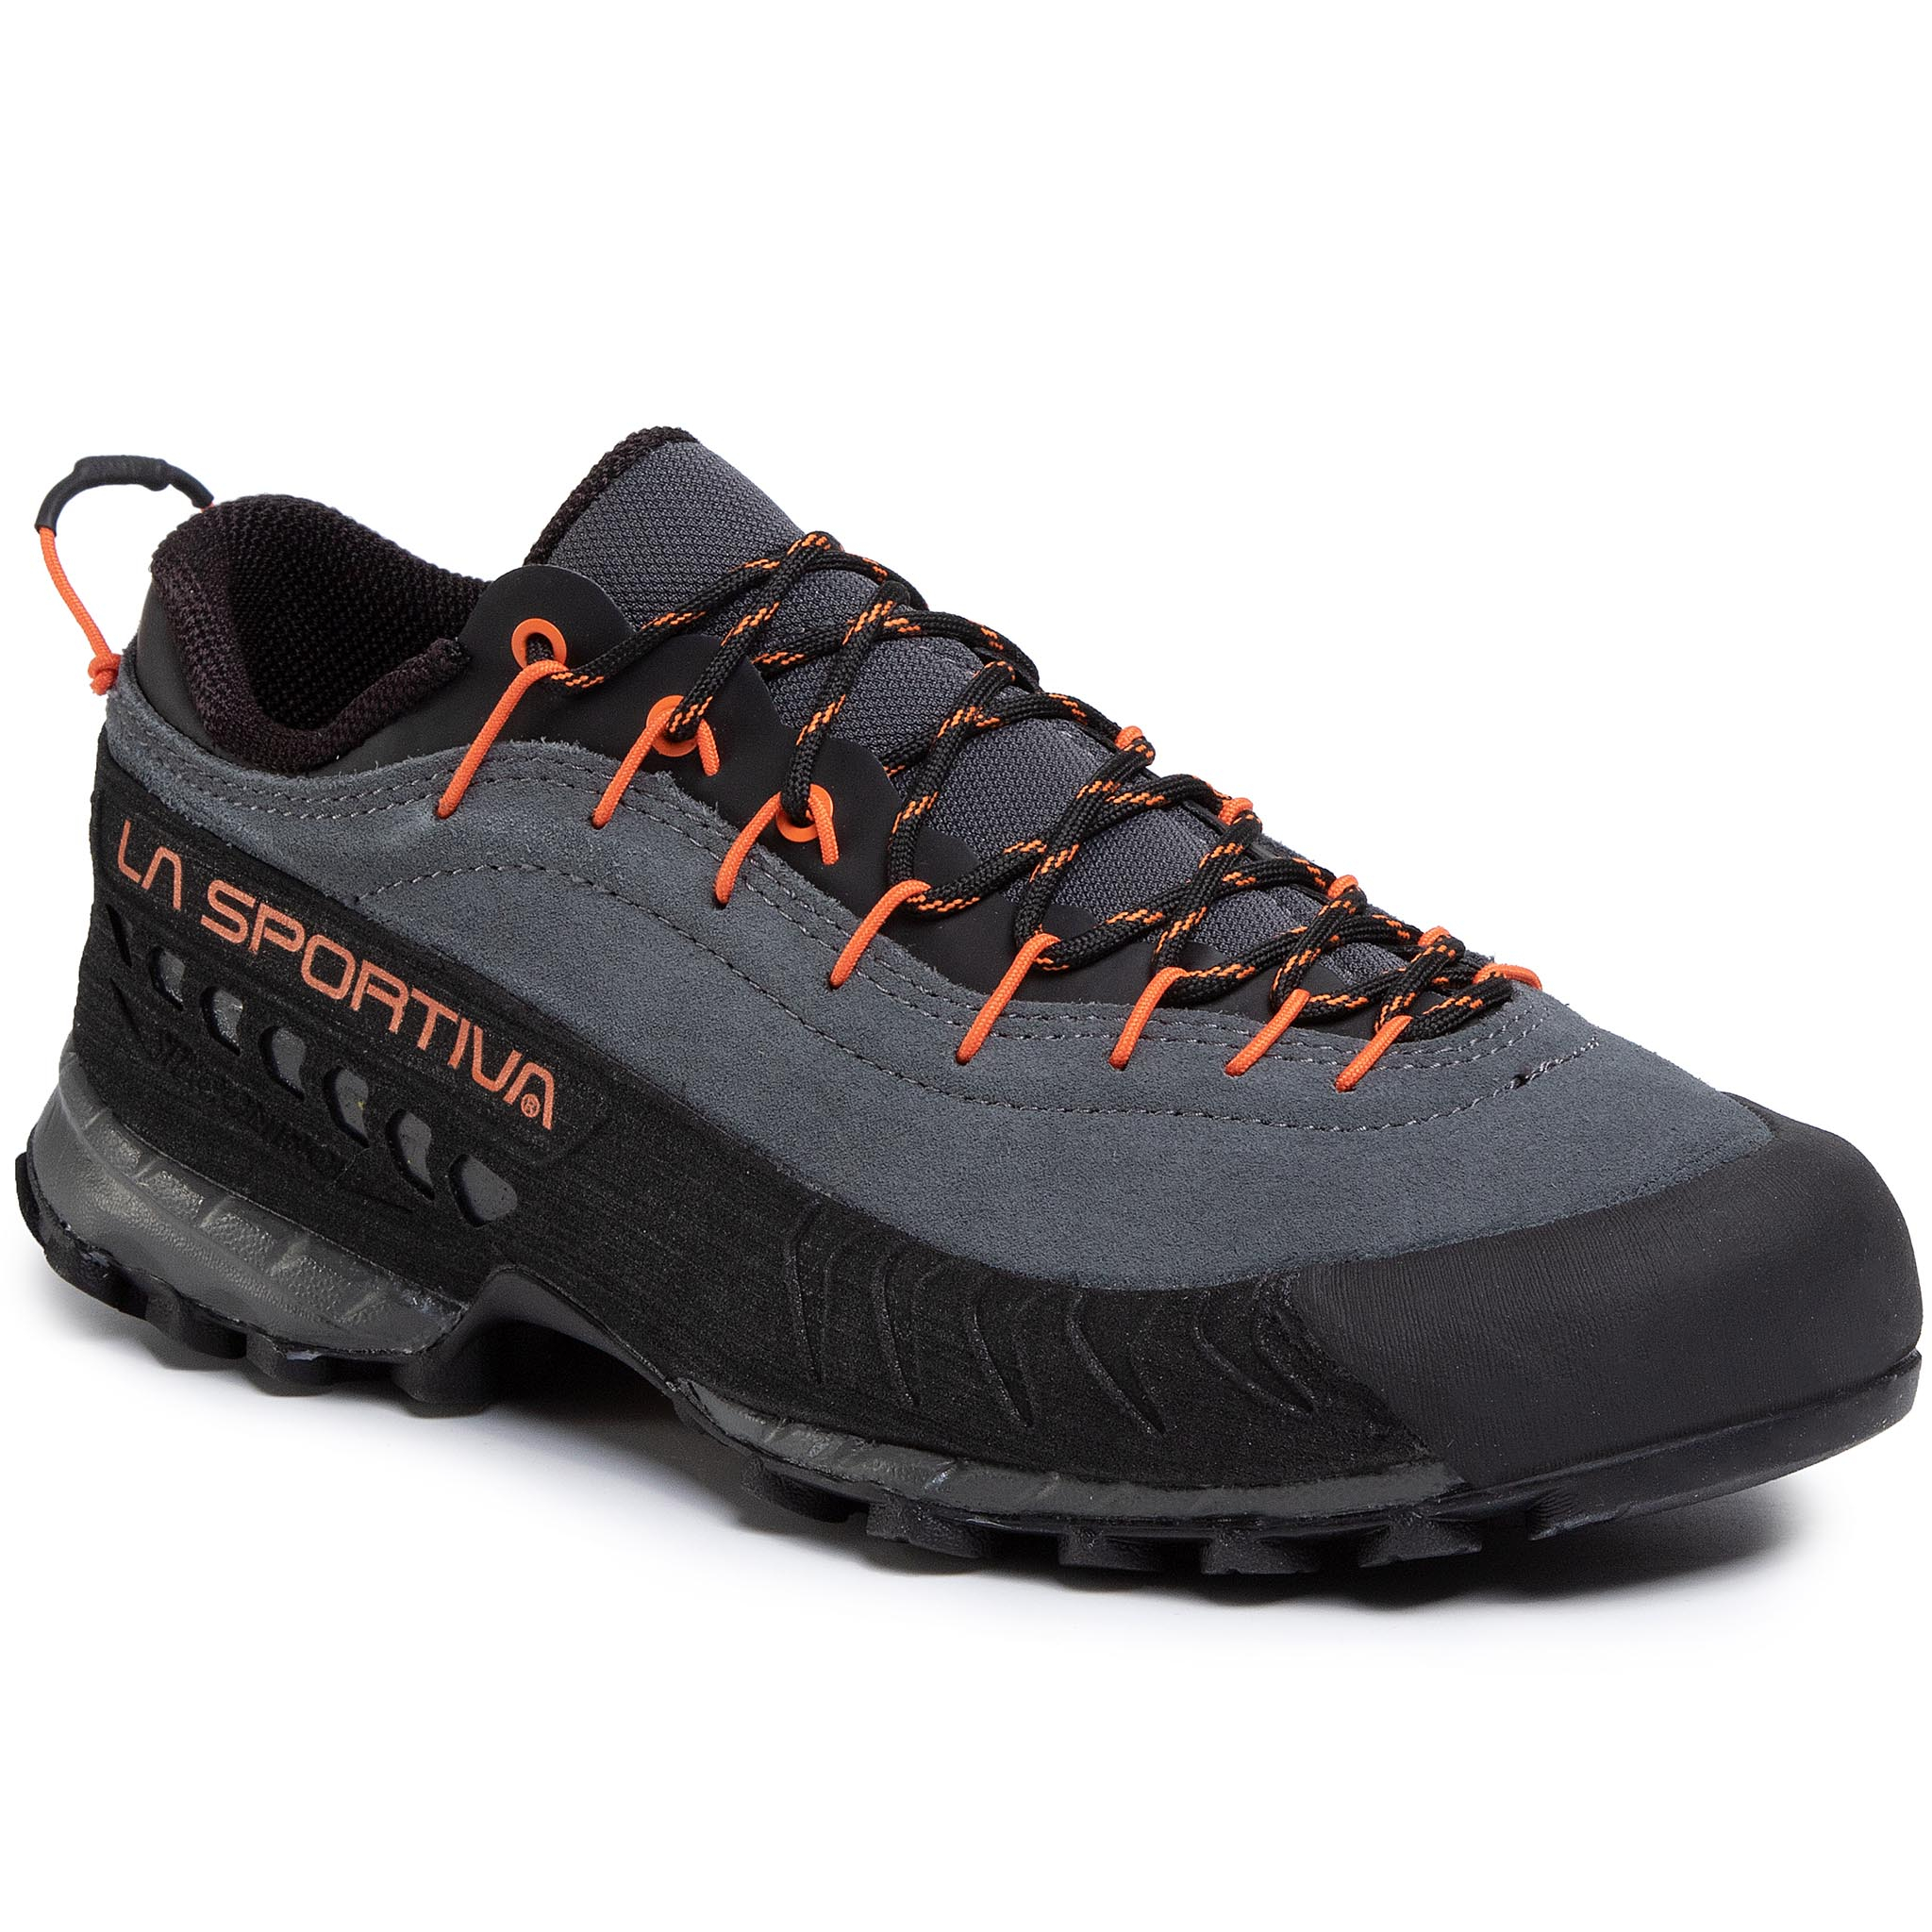 Trekkings La Sportiva - Tx4 Approach 17w900304 Carbon/Flame imagine epantofi.ro 2021